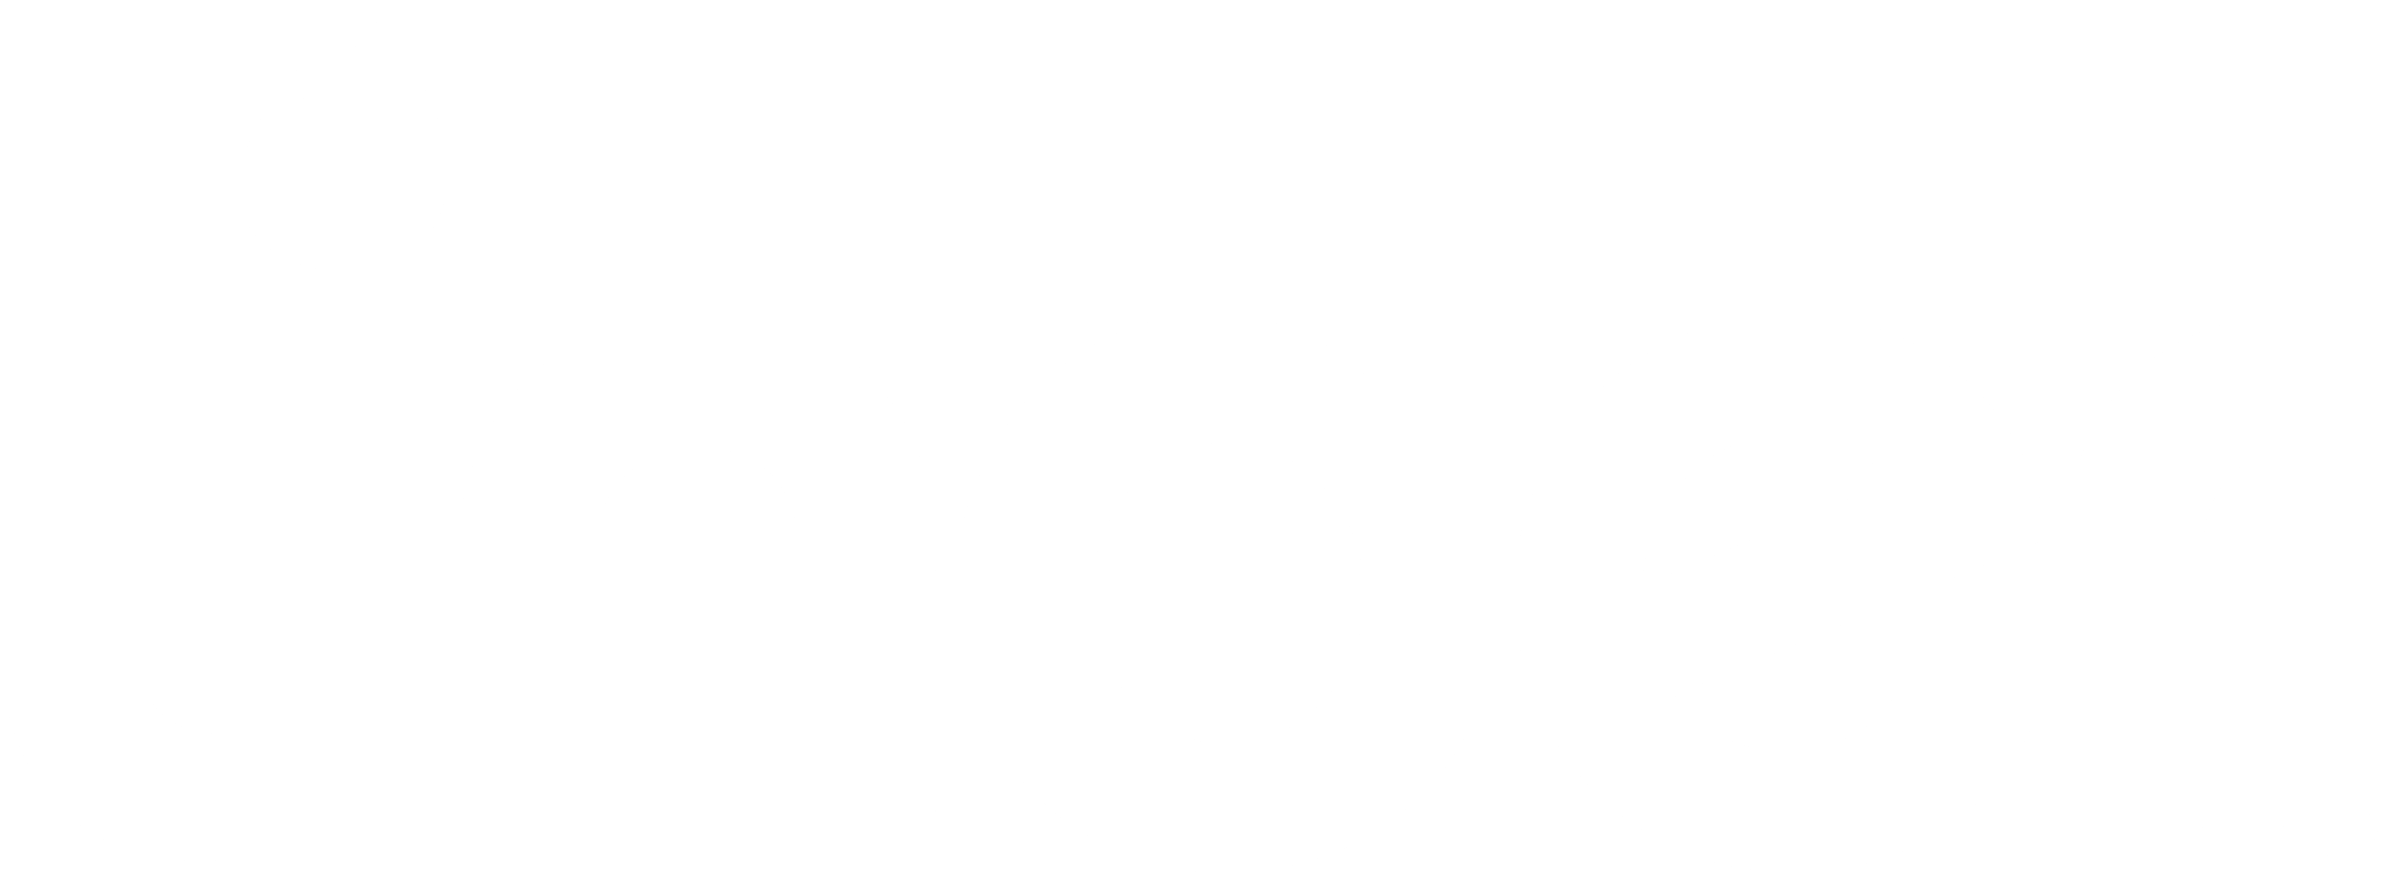 New Tinder Logo Png / Thousands of new png image resources ...